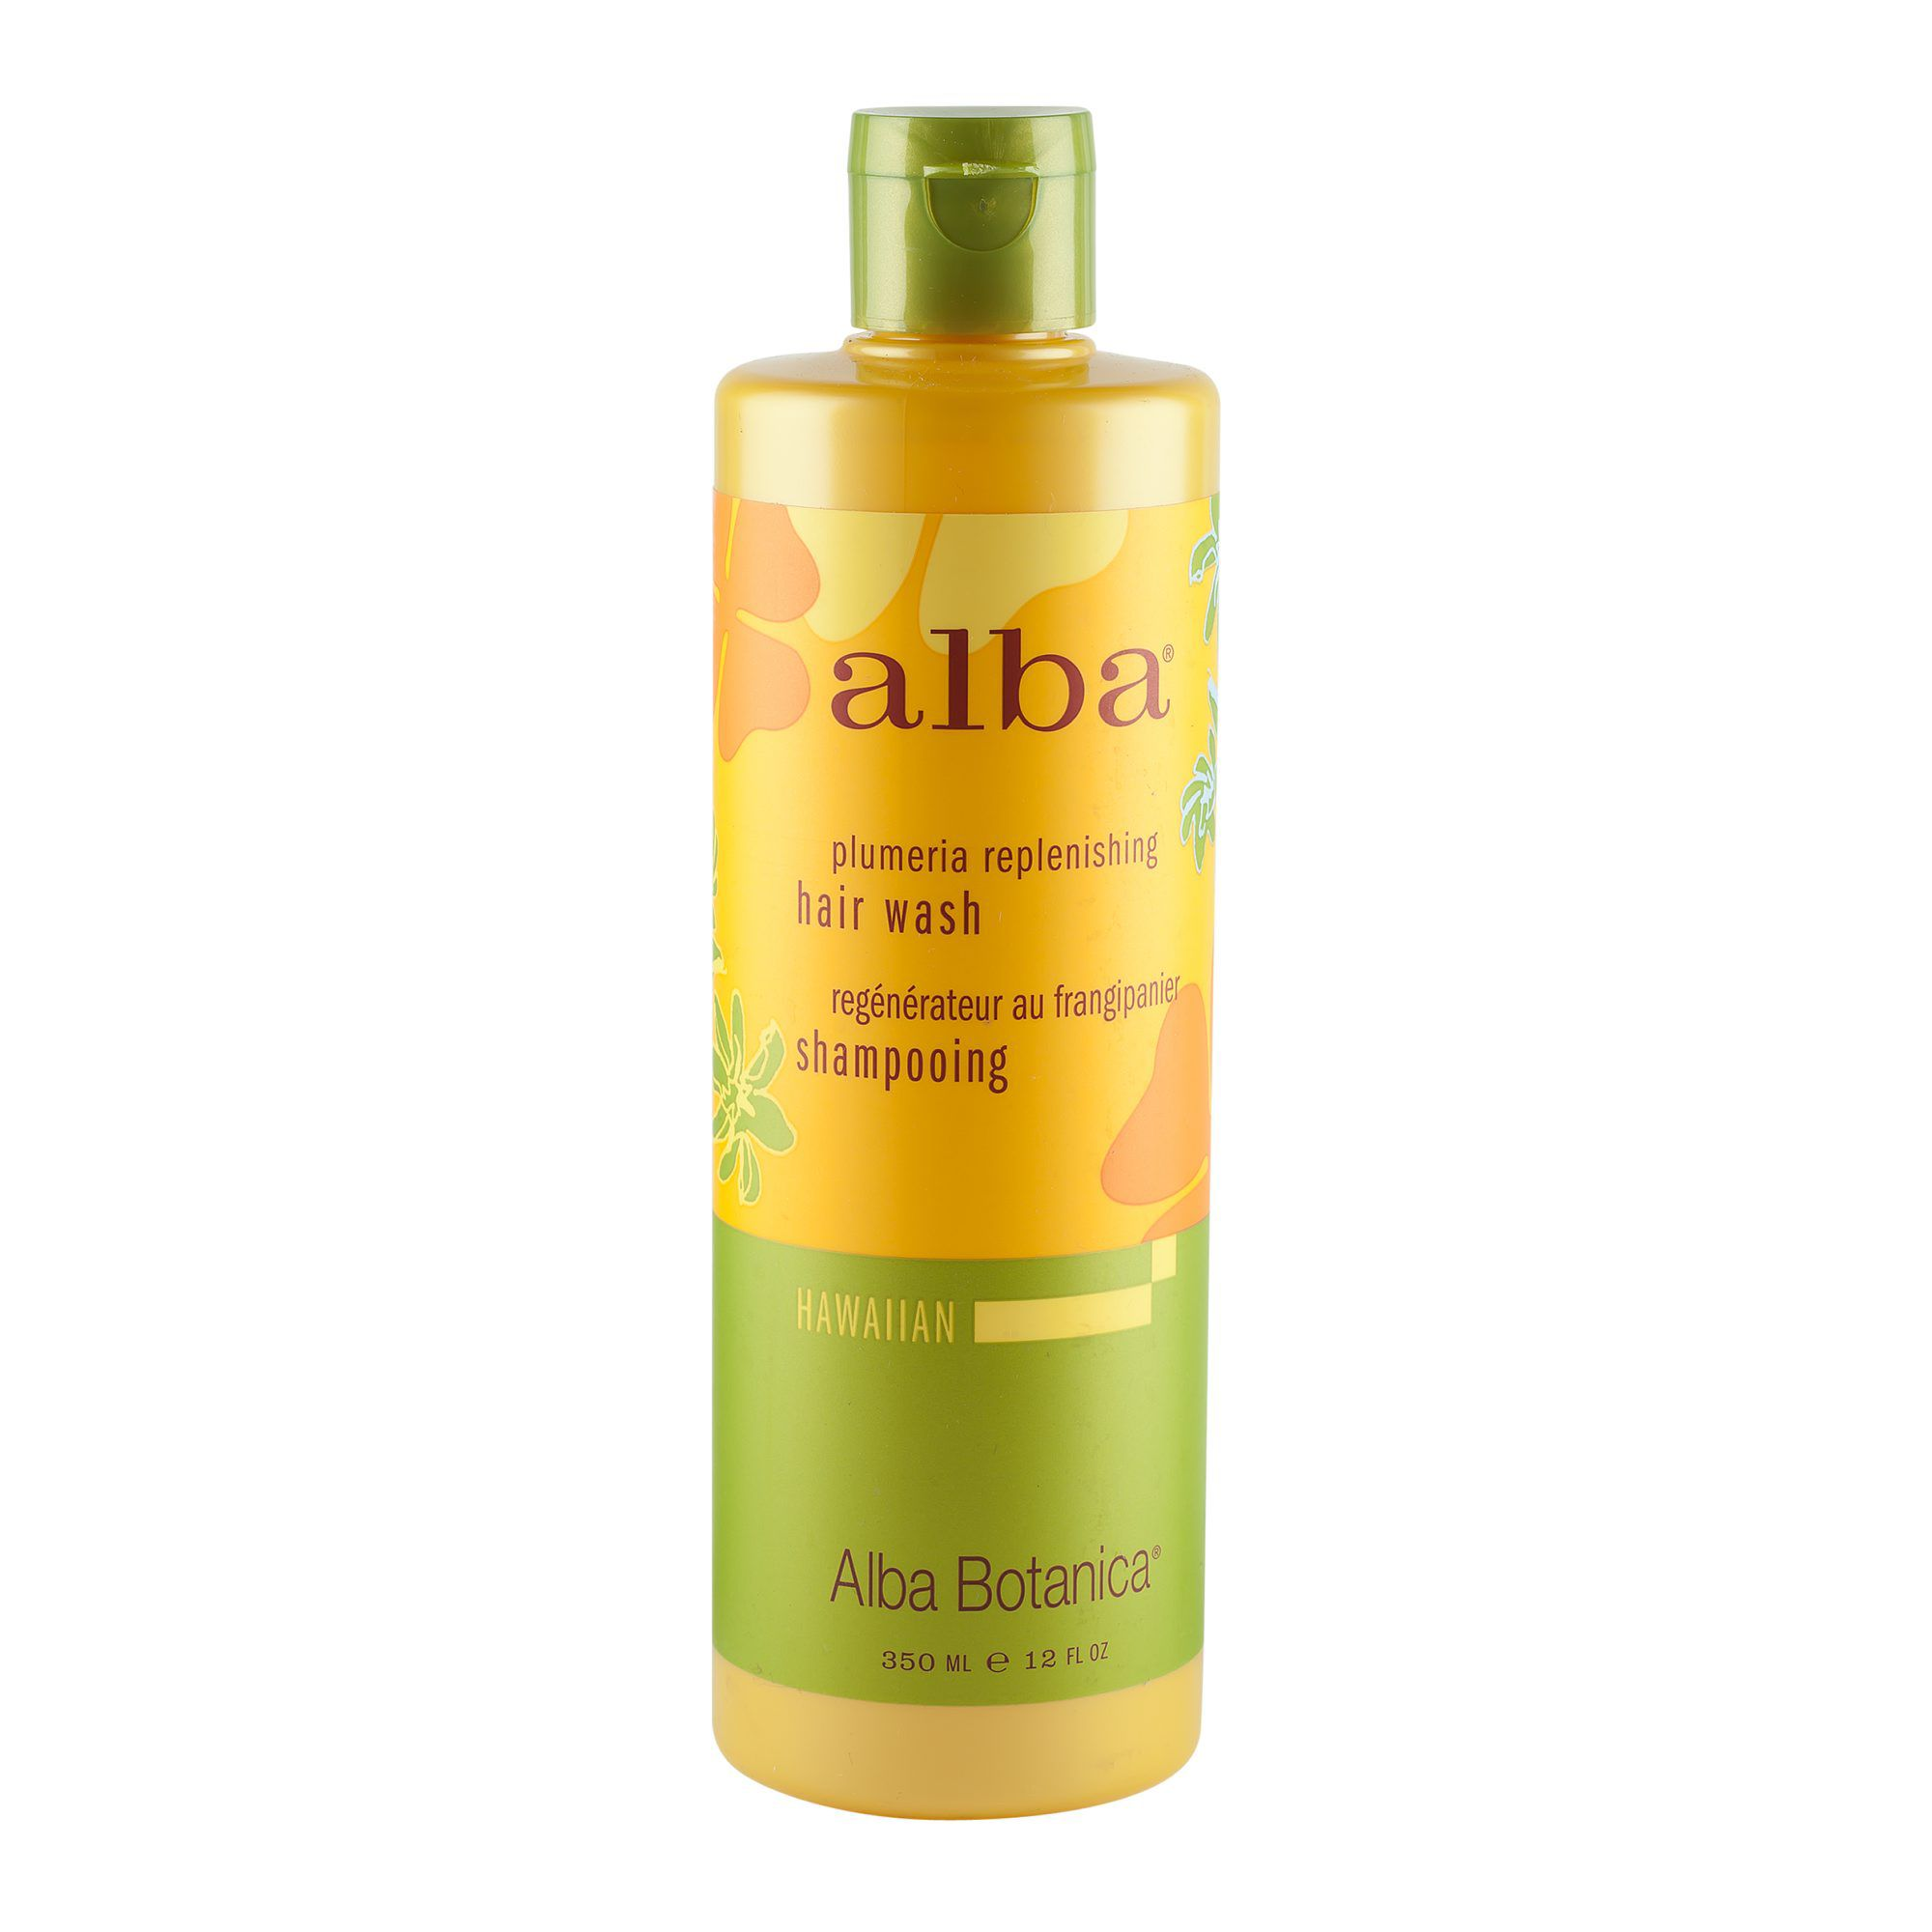 Plumeria Rep. Hair Wash 350ml